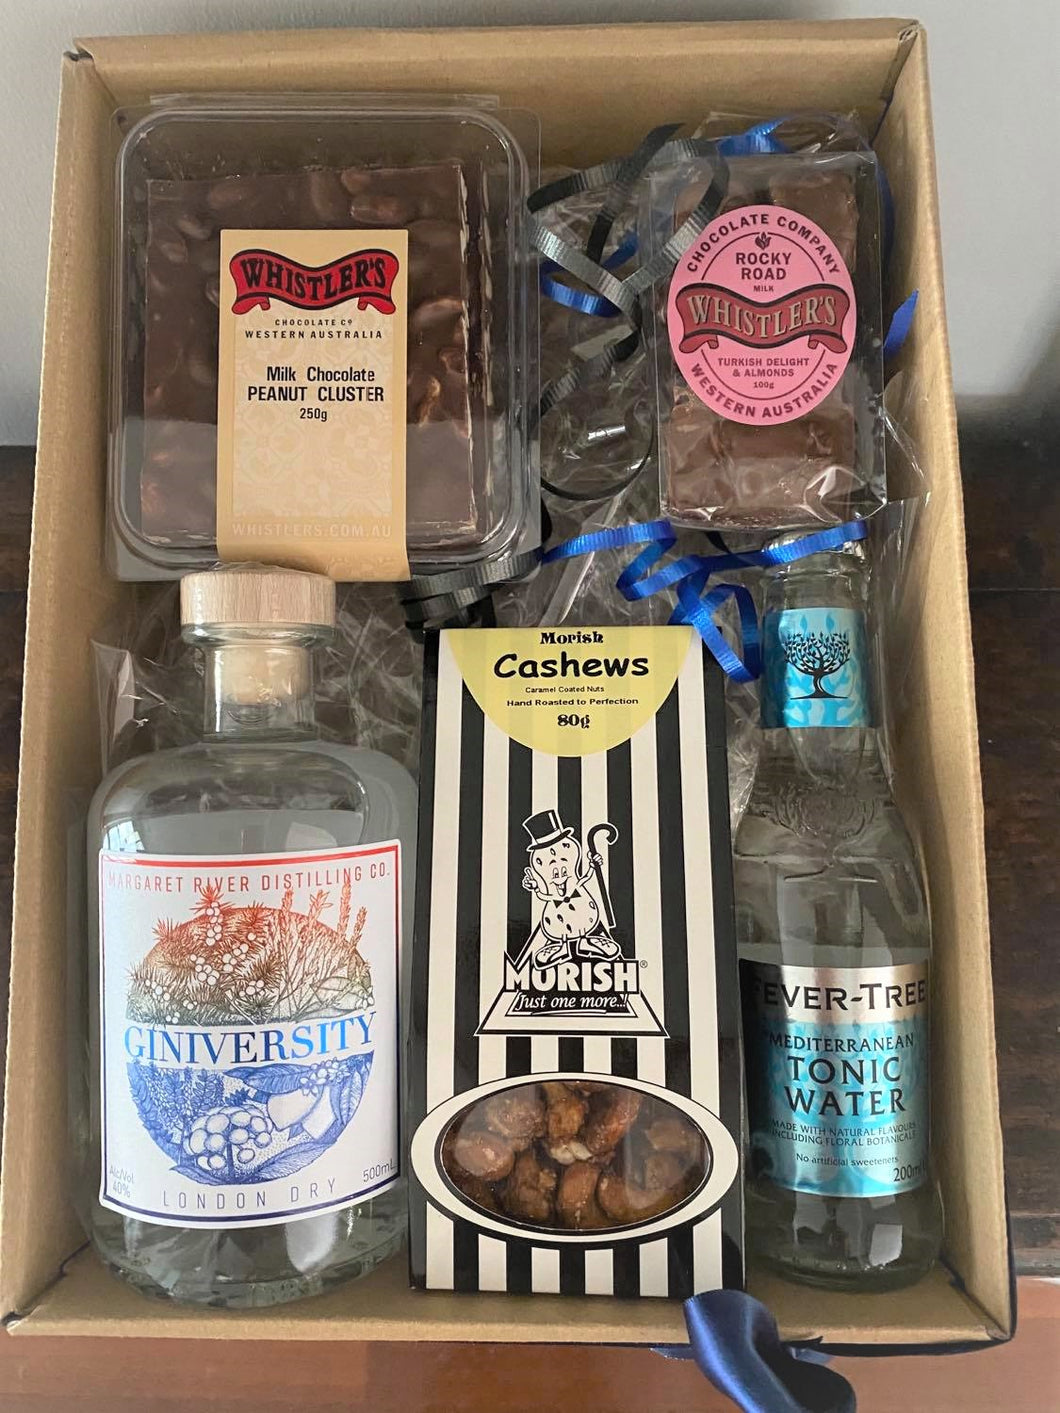 Giniversity London Dry Gin Hamper